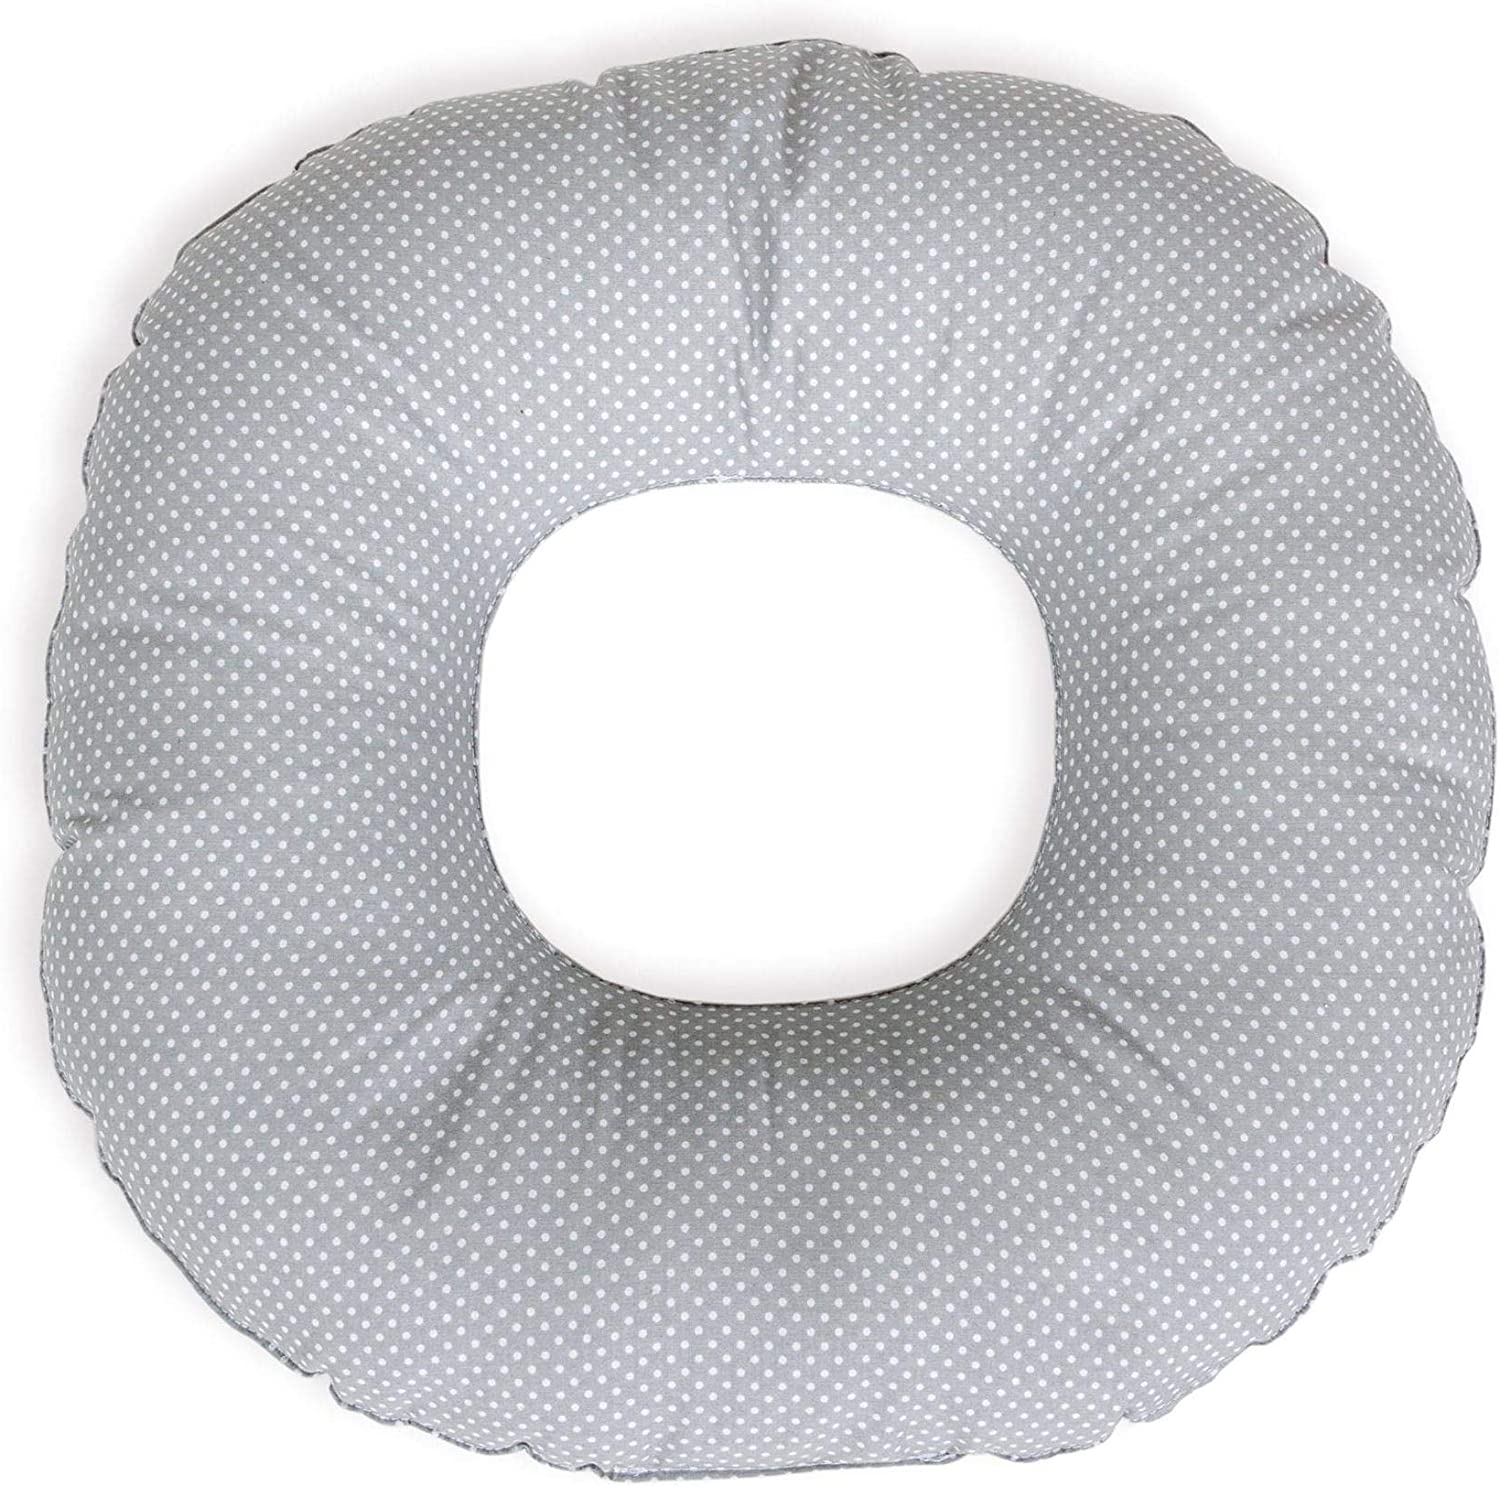 Postpartum Support Pillow Pregnancy Ring Cushion Postnatal Relief Seat #2